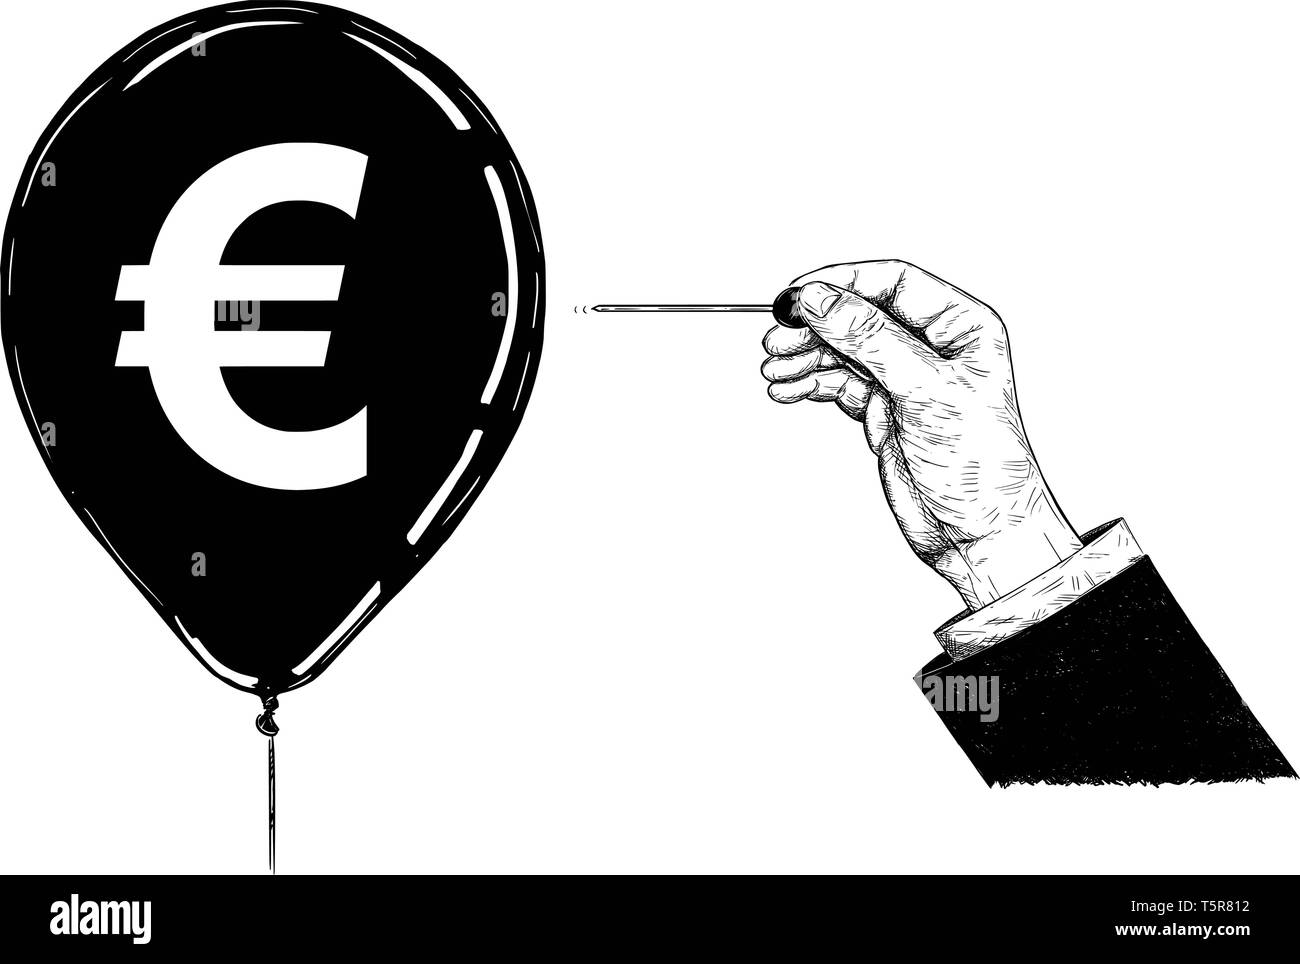 Cartoon drawing conceptual illustration of hand of businessman with needle or pin popping Euro currency symbol balloon. - Stock Vector